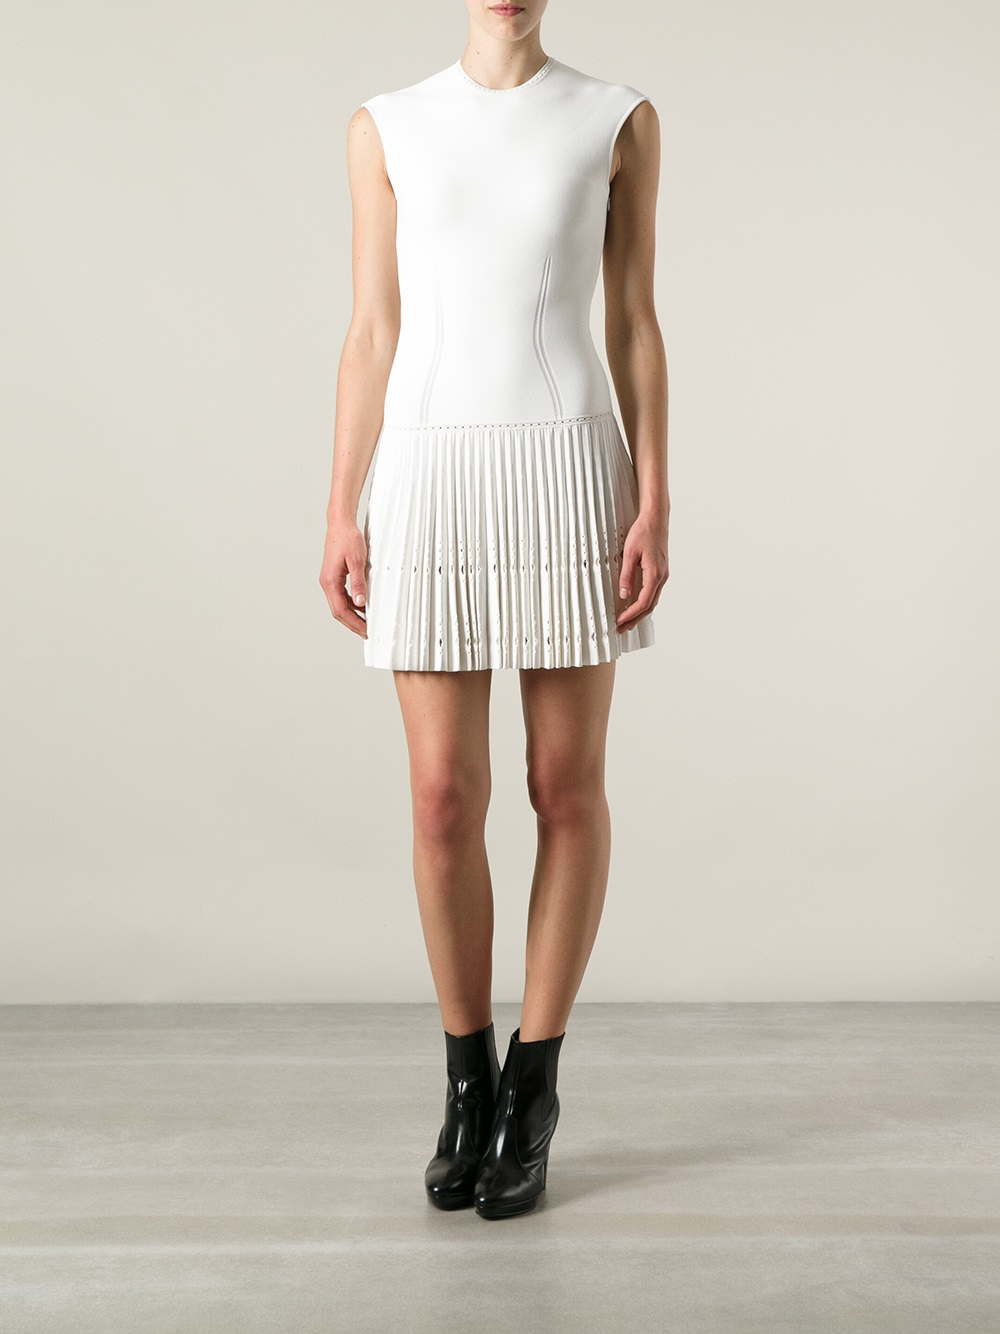 Alexander mcqueen Pleated Hem Dress in White | Lyst